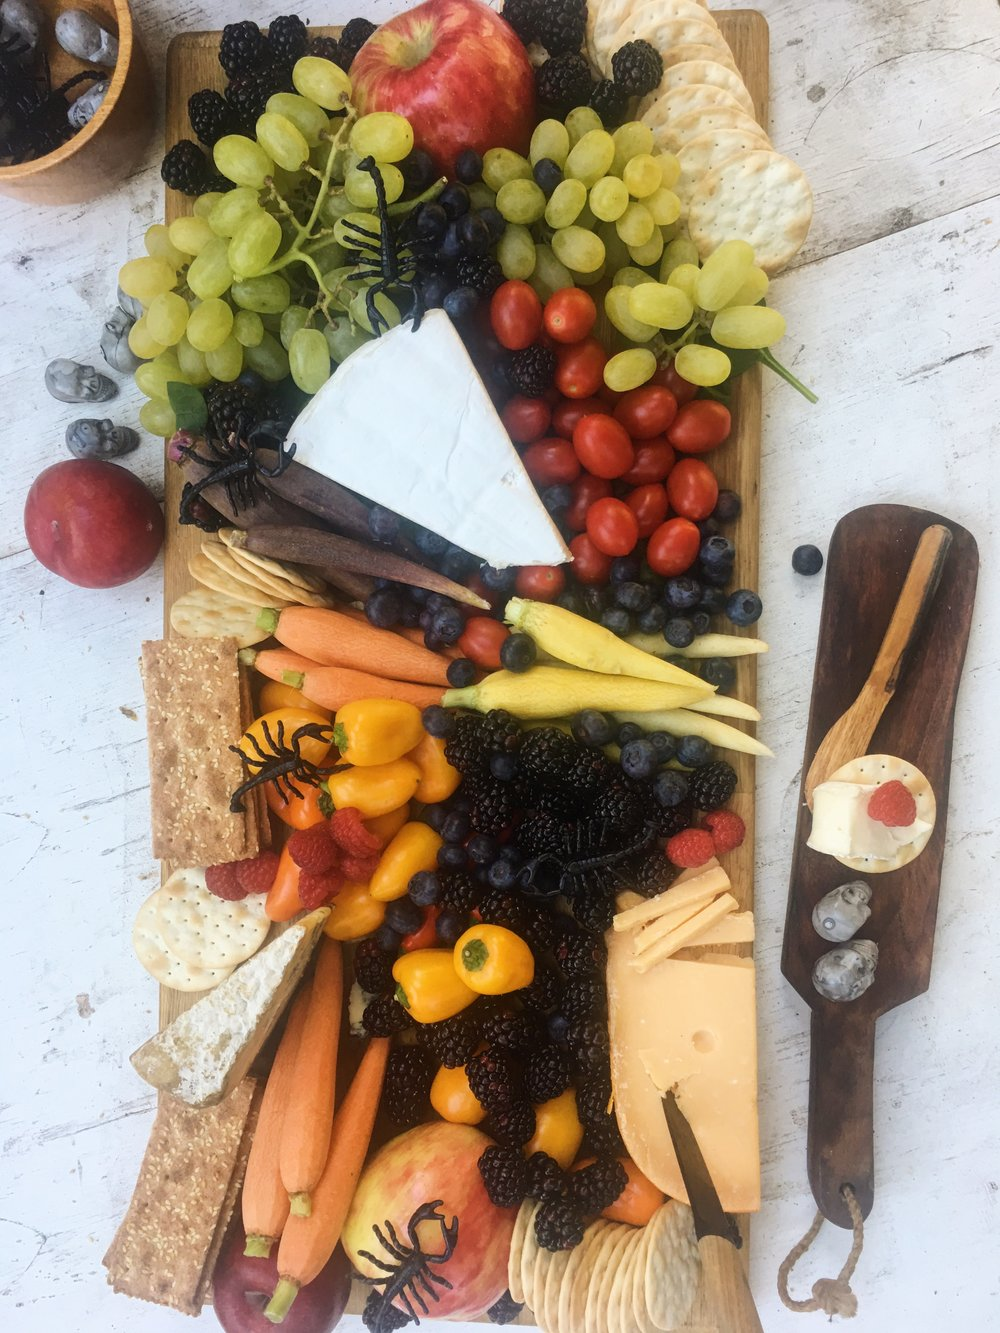 A classic cheese board full of delights. Be generous. Even a scorpion or two makes for a little variety (just kidding ... boo!)